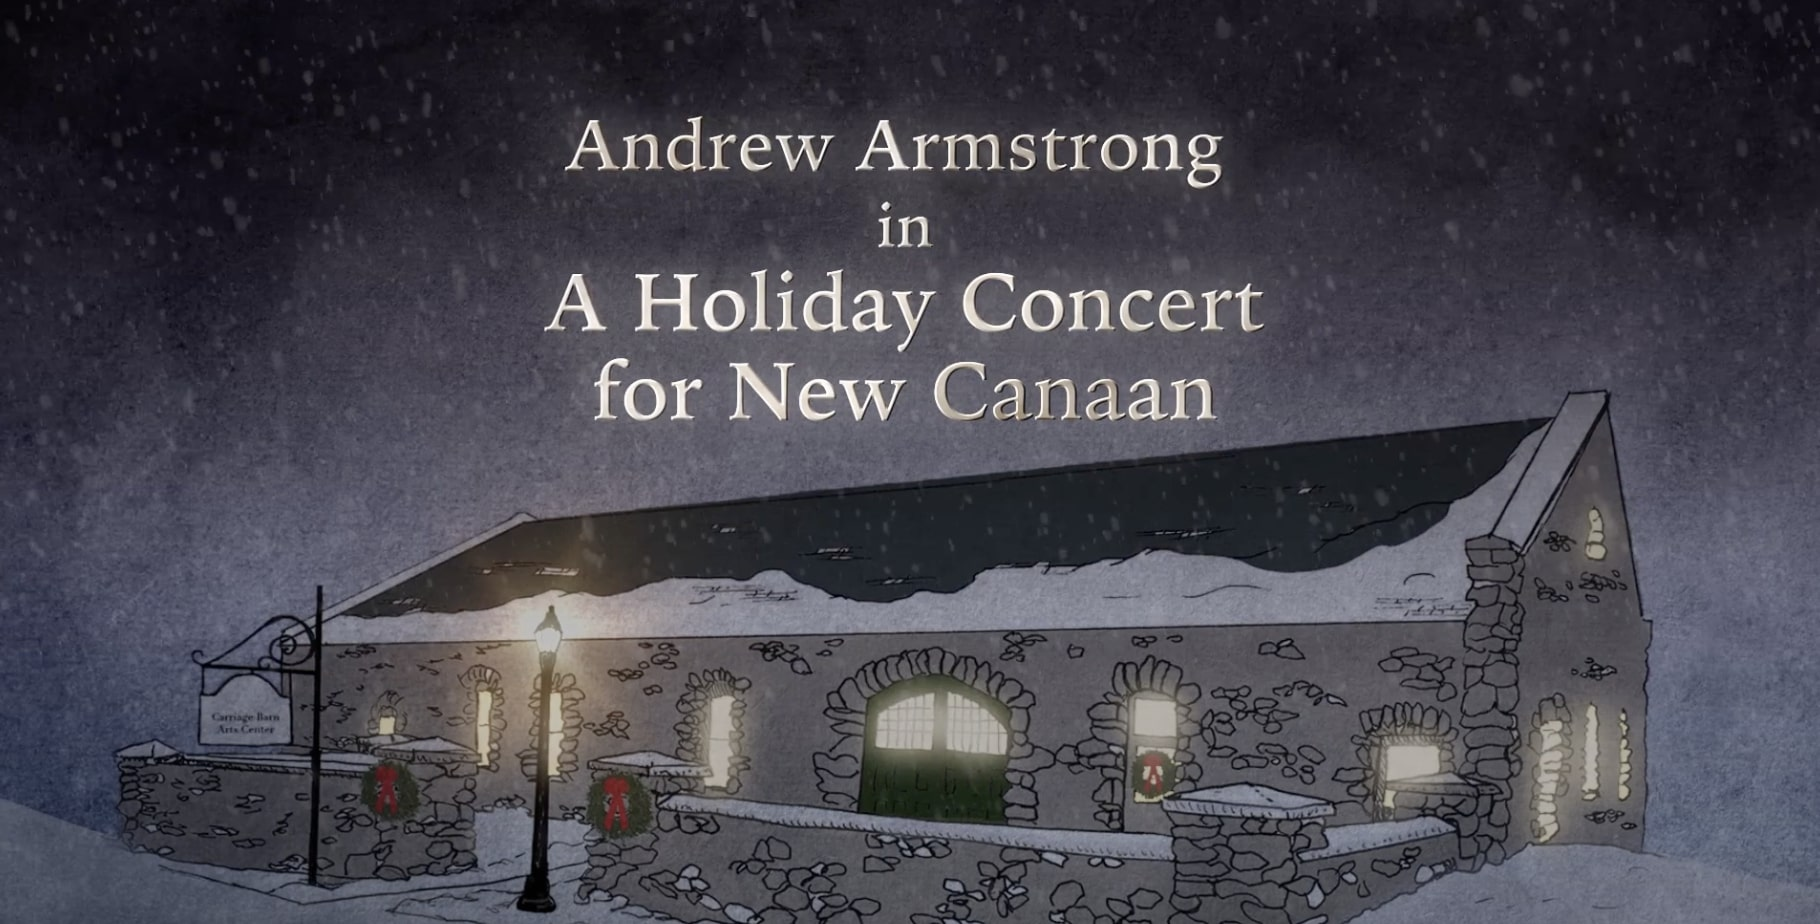 A New Canaan Holiday Concert